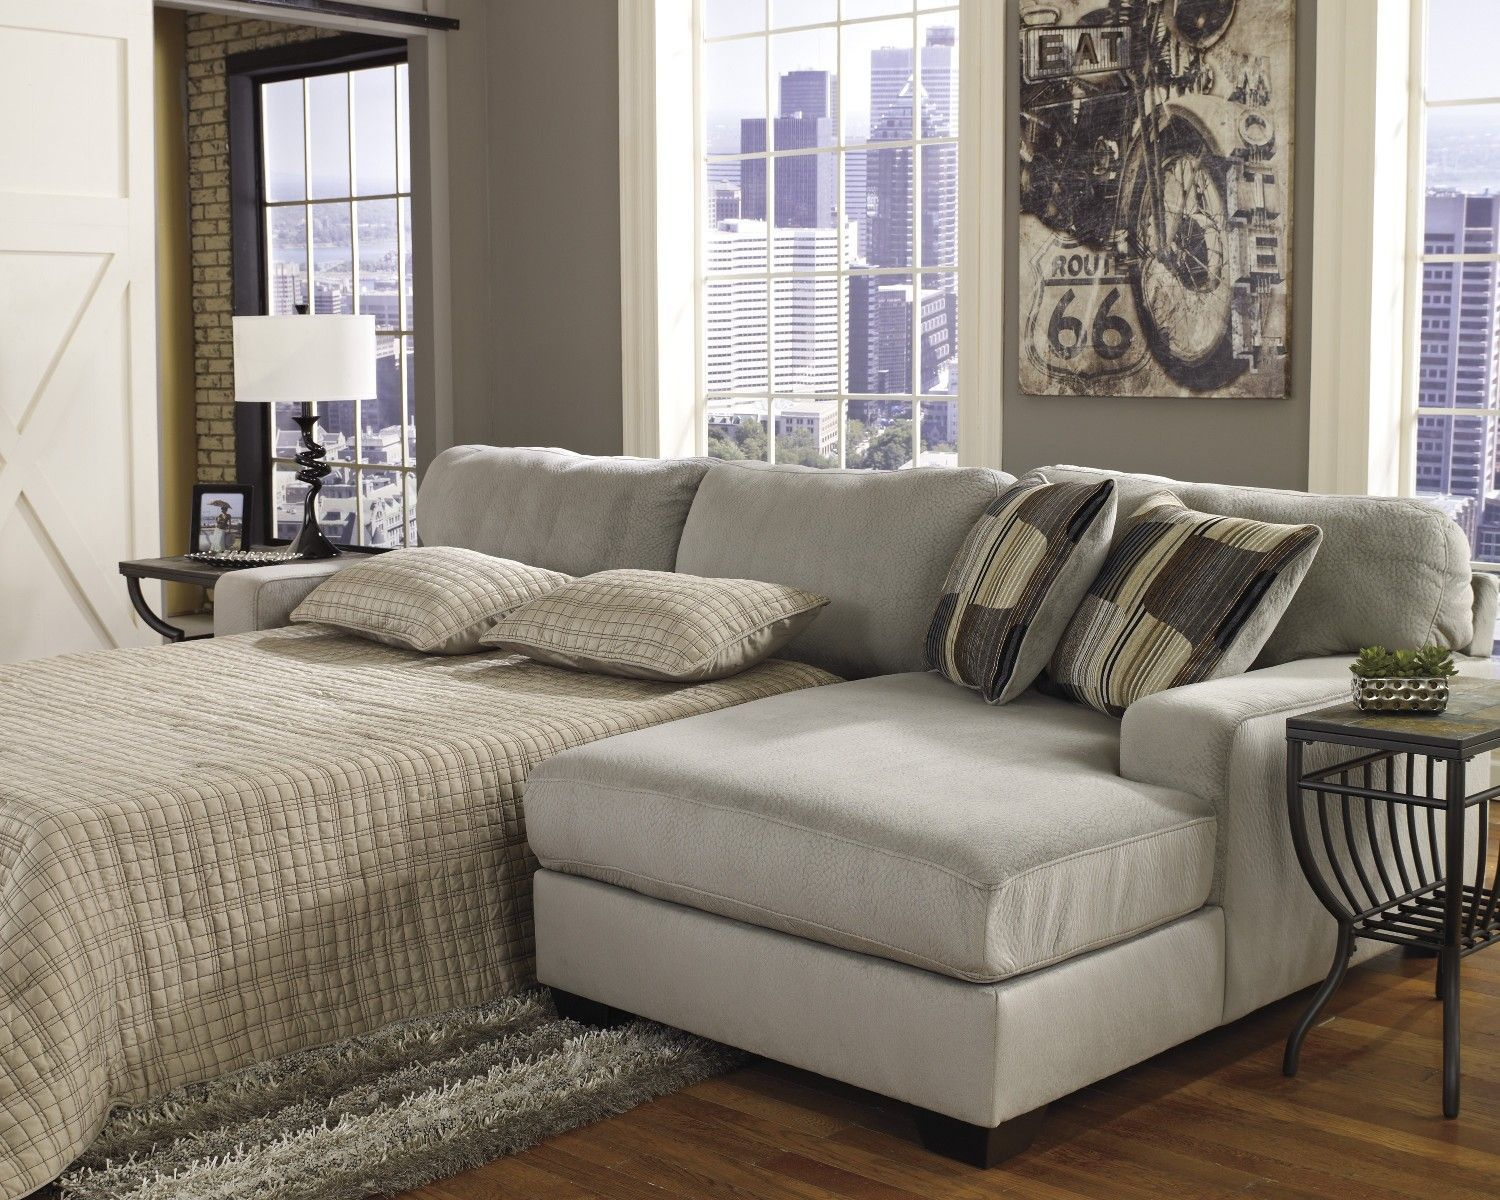 Tips To Consider When Ing A Sleeper Sofa Sleepersofa